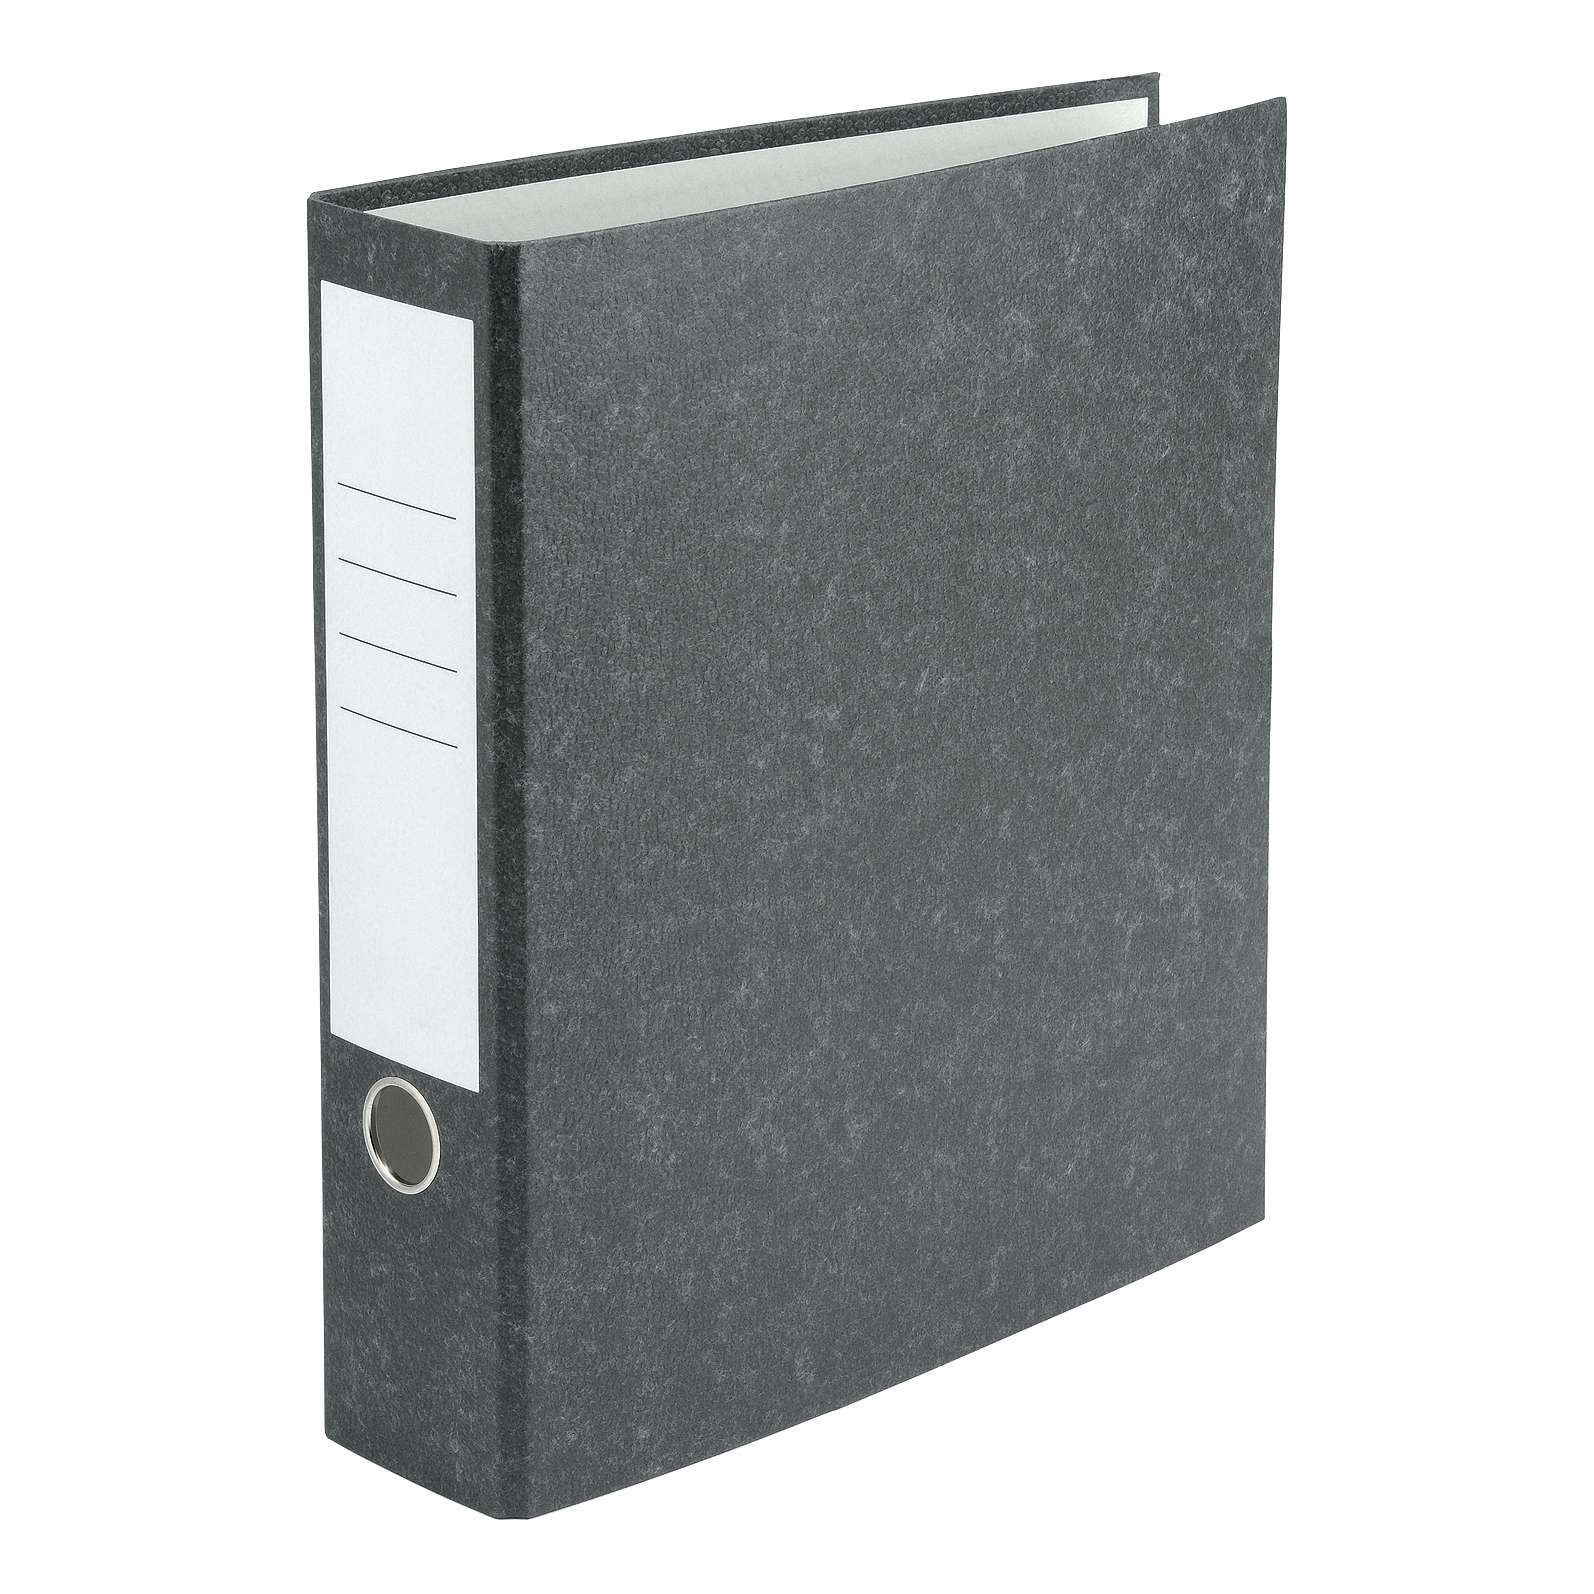 Lever Arch Files 5 Star Value Lever Arch File A4 Pack 10